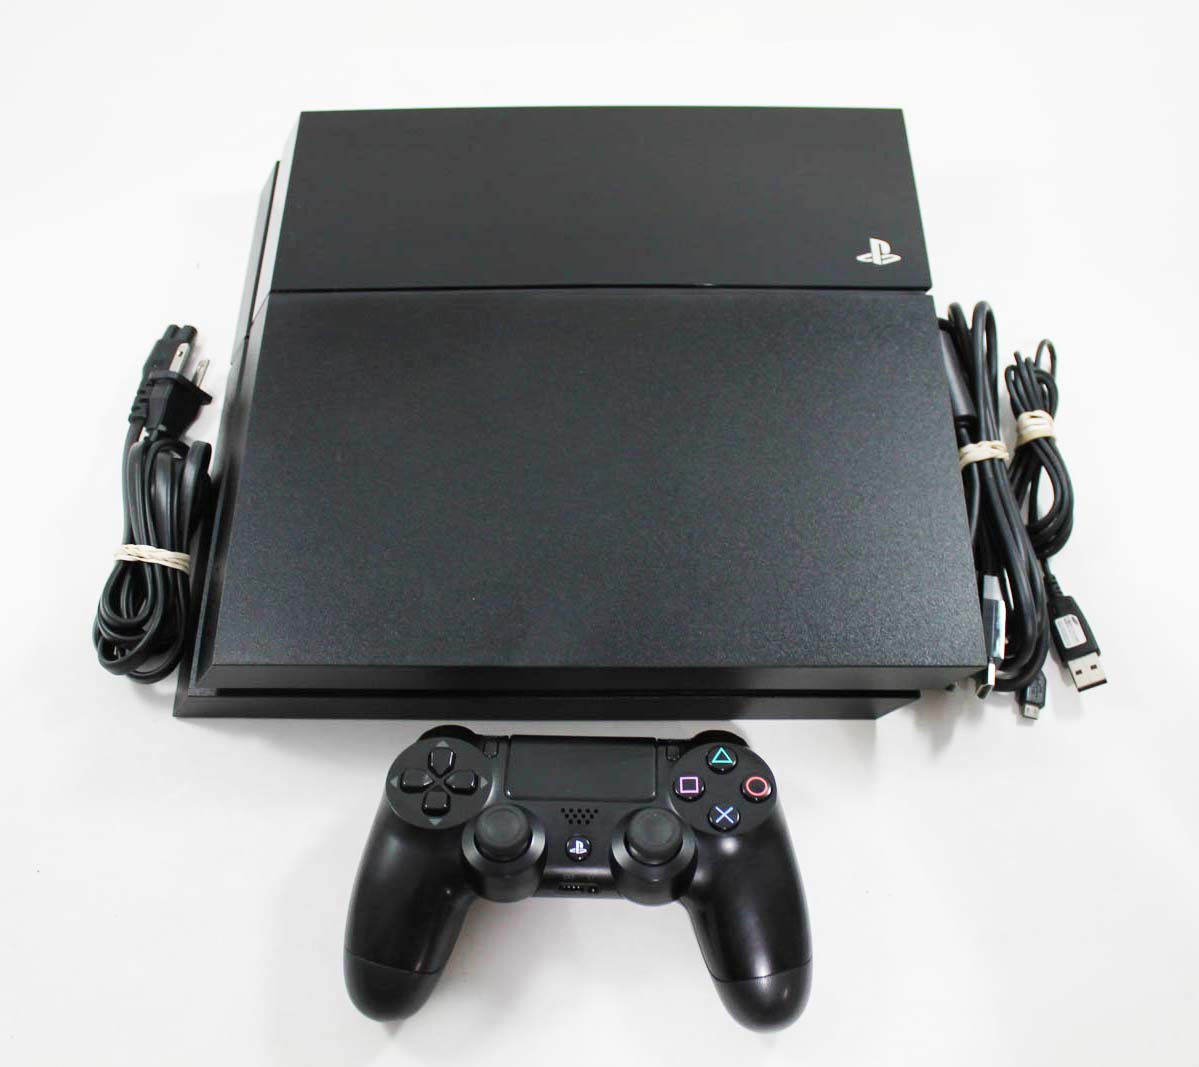 Playstation 4 for sale! | junk mail.